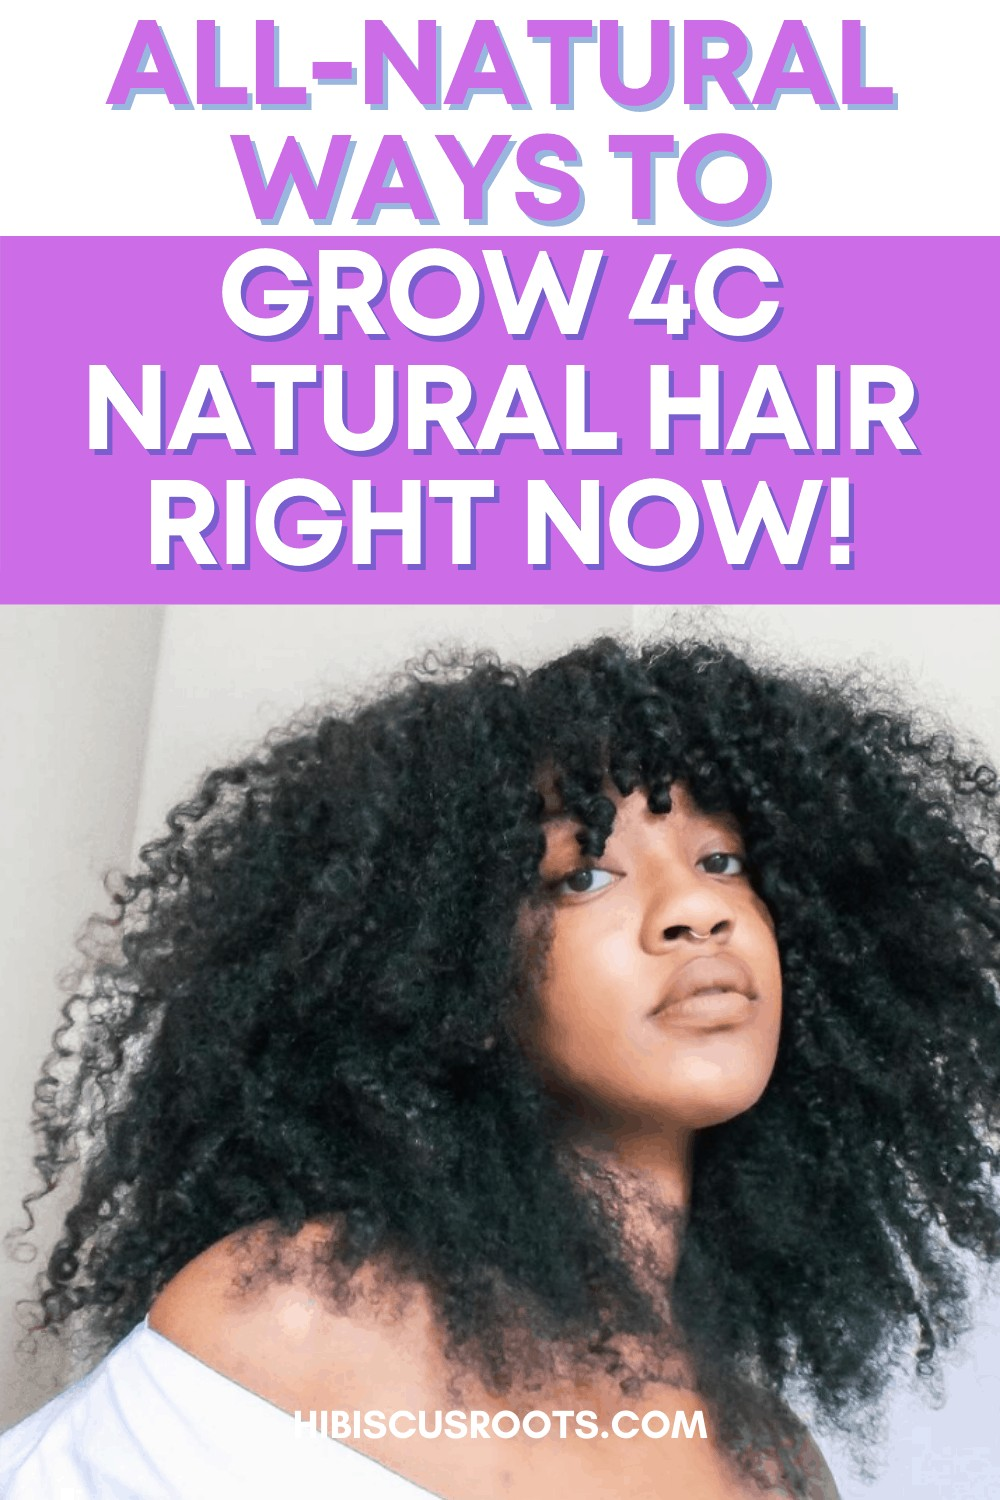 how to grow 4c natural hair